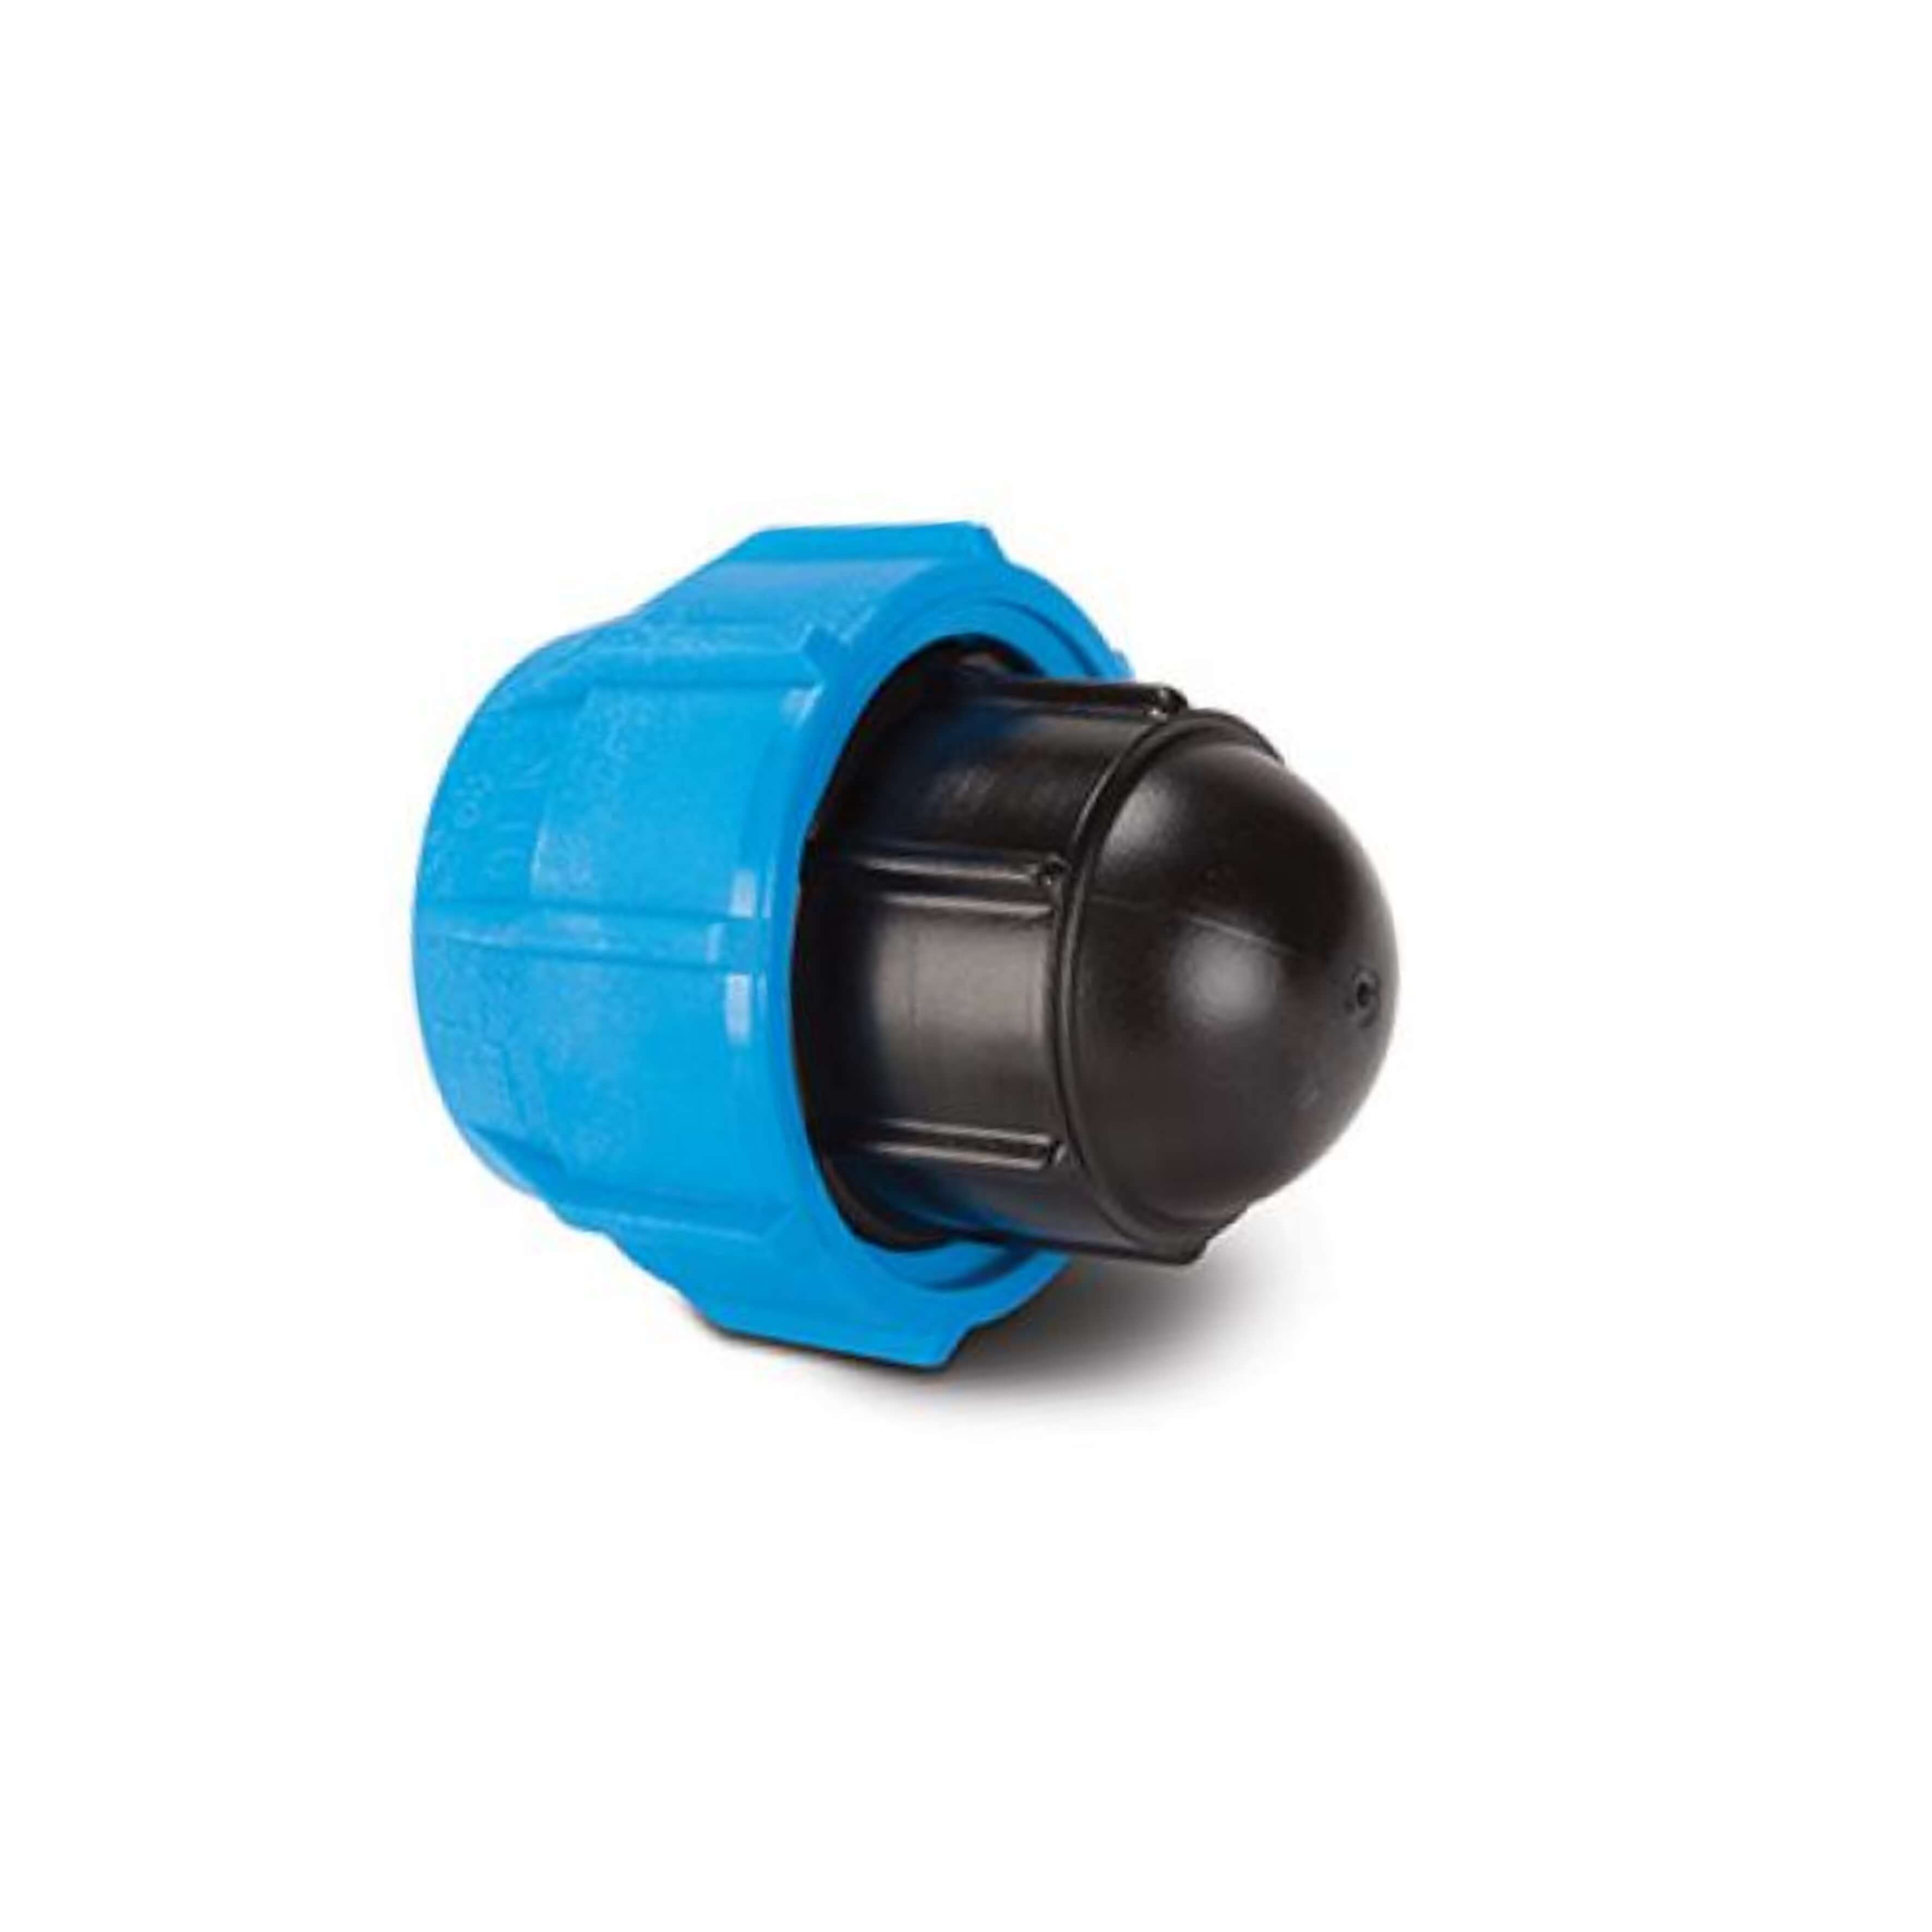 Polypipe Polyfast 25mm Stop End 40925